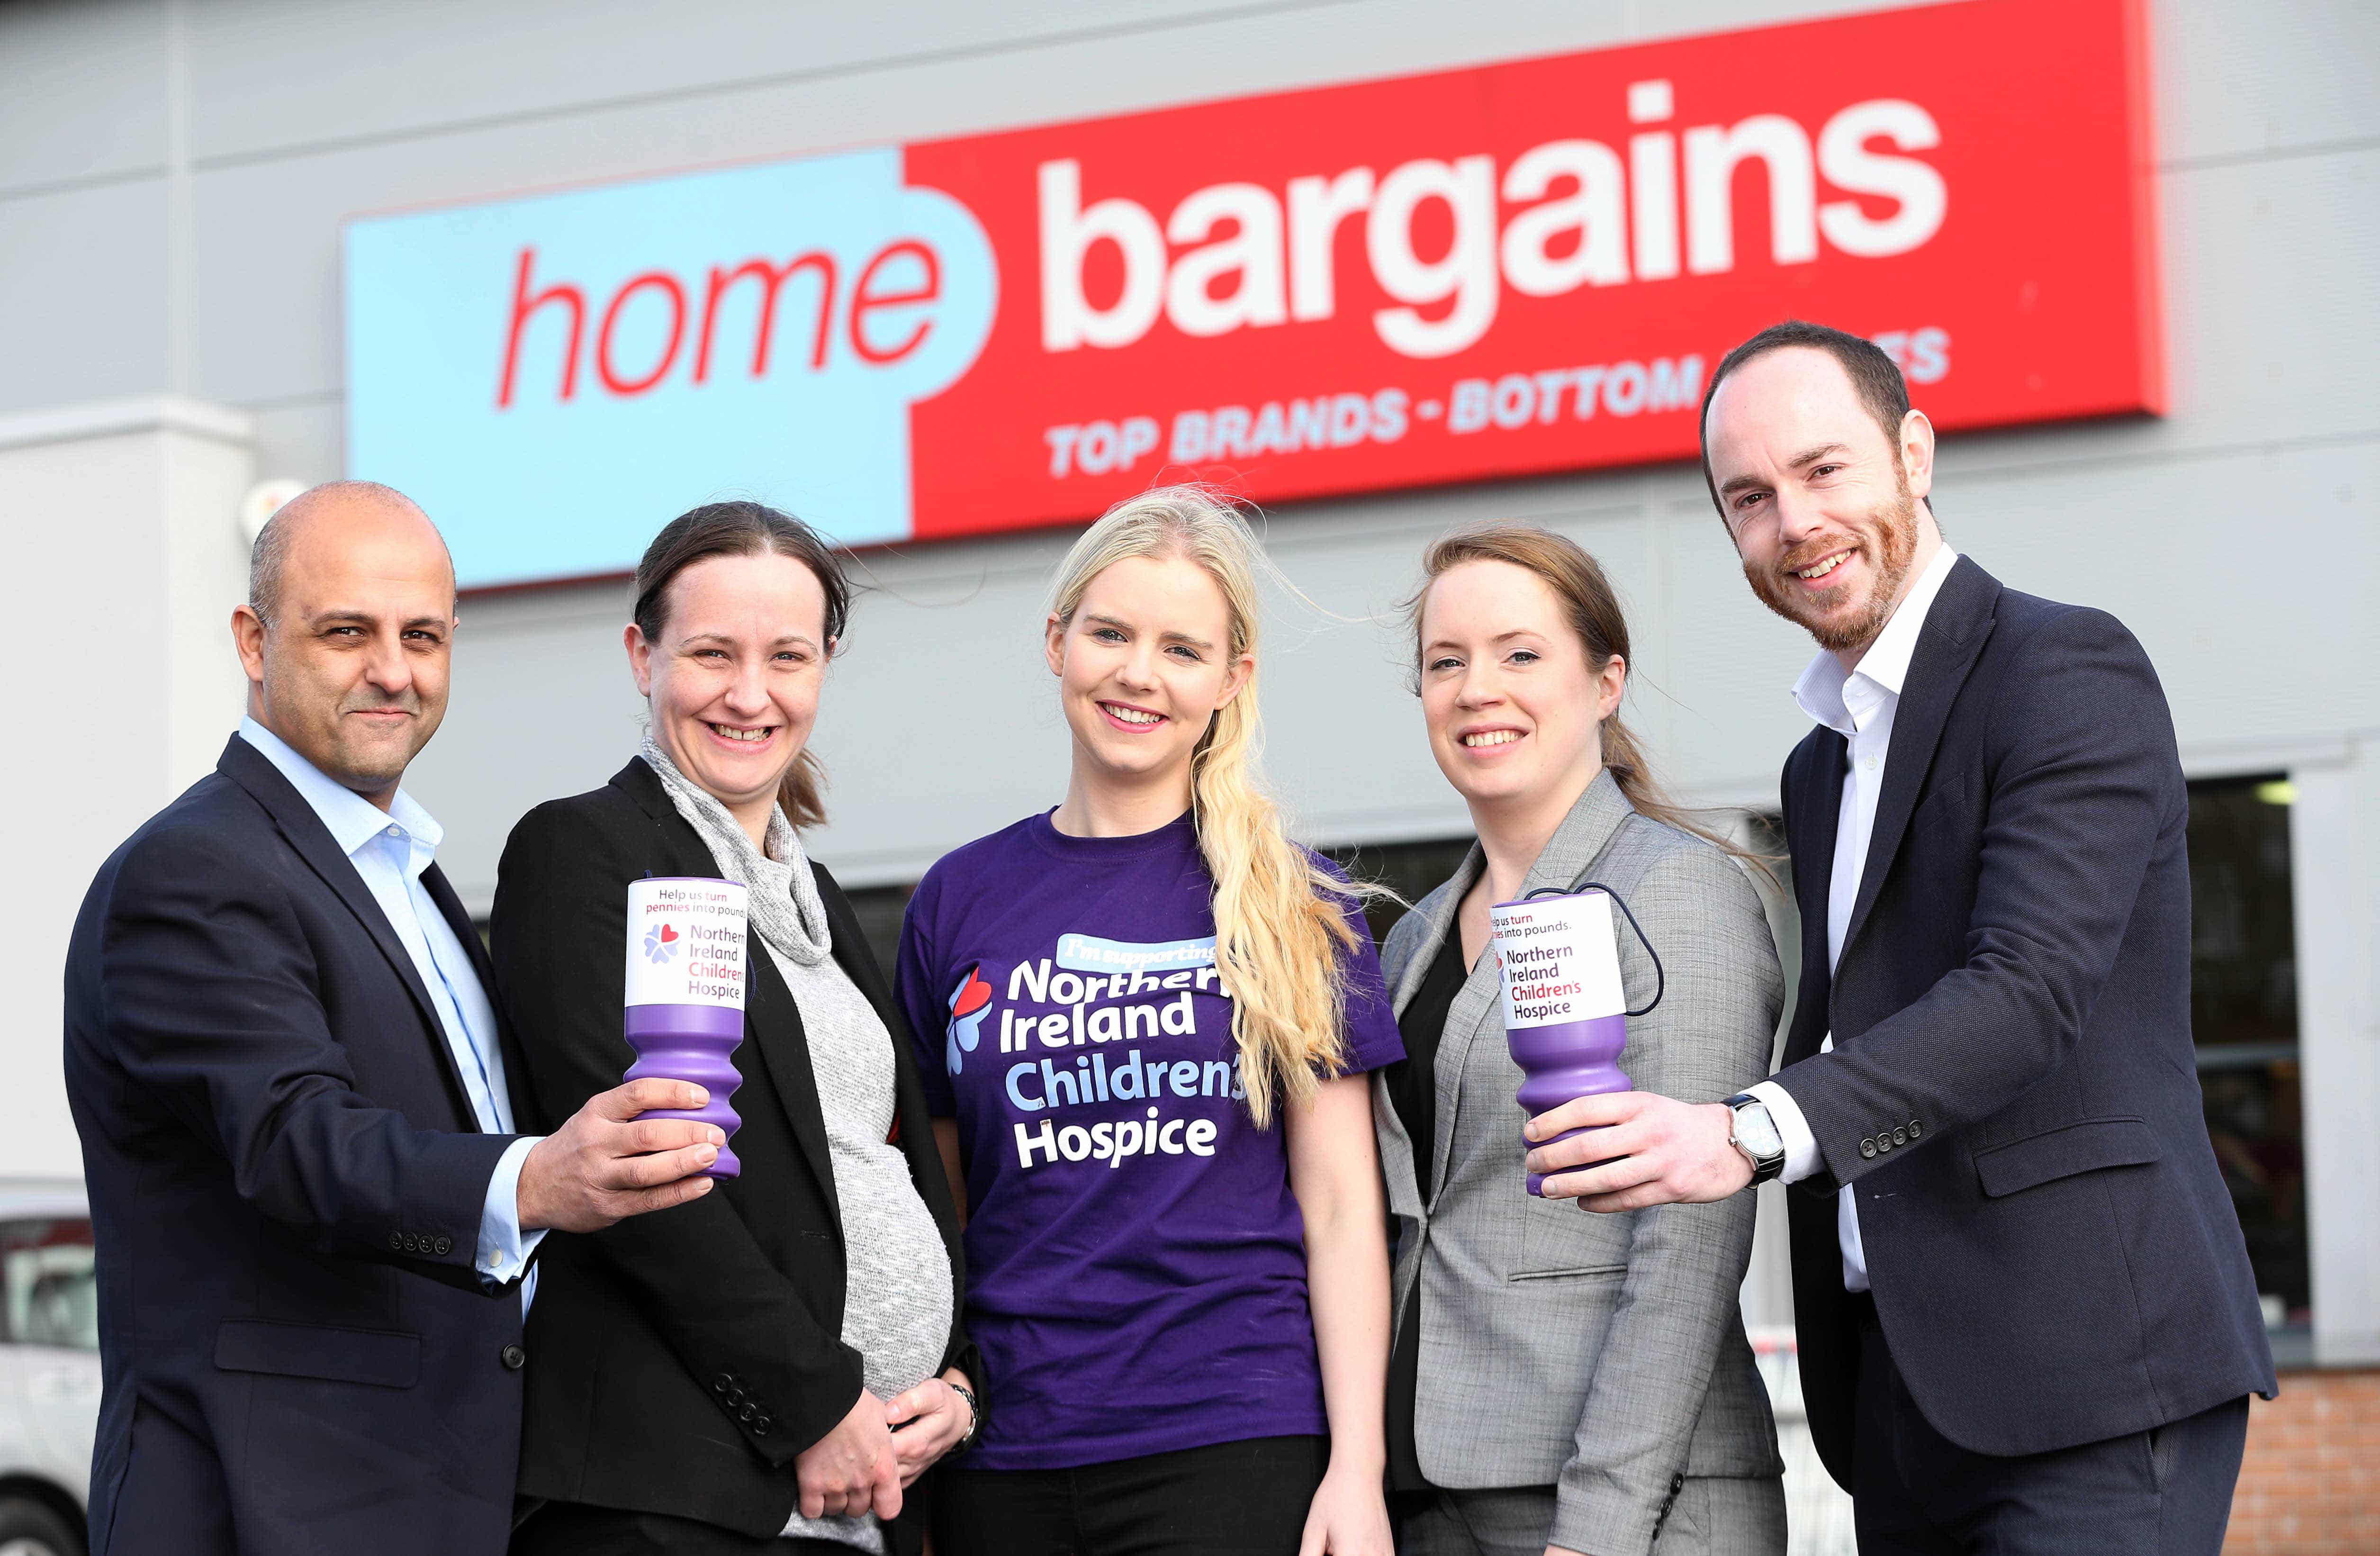 Home Bargains Announce Charity Partnership With Northern Ireland